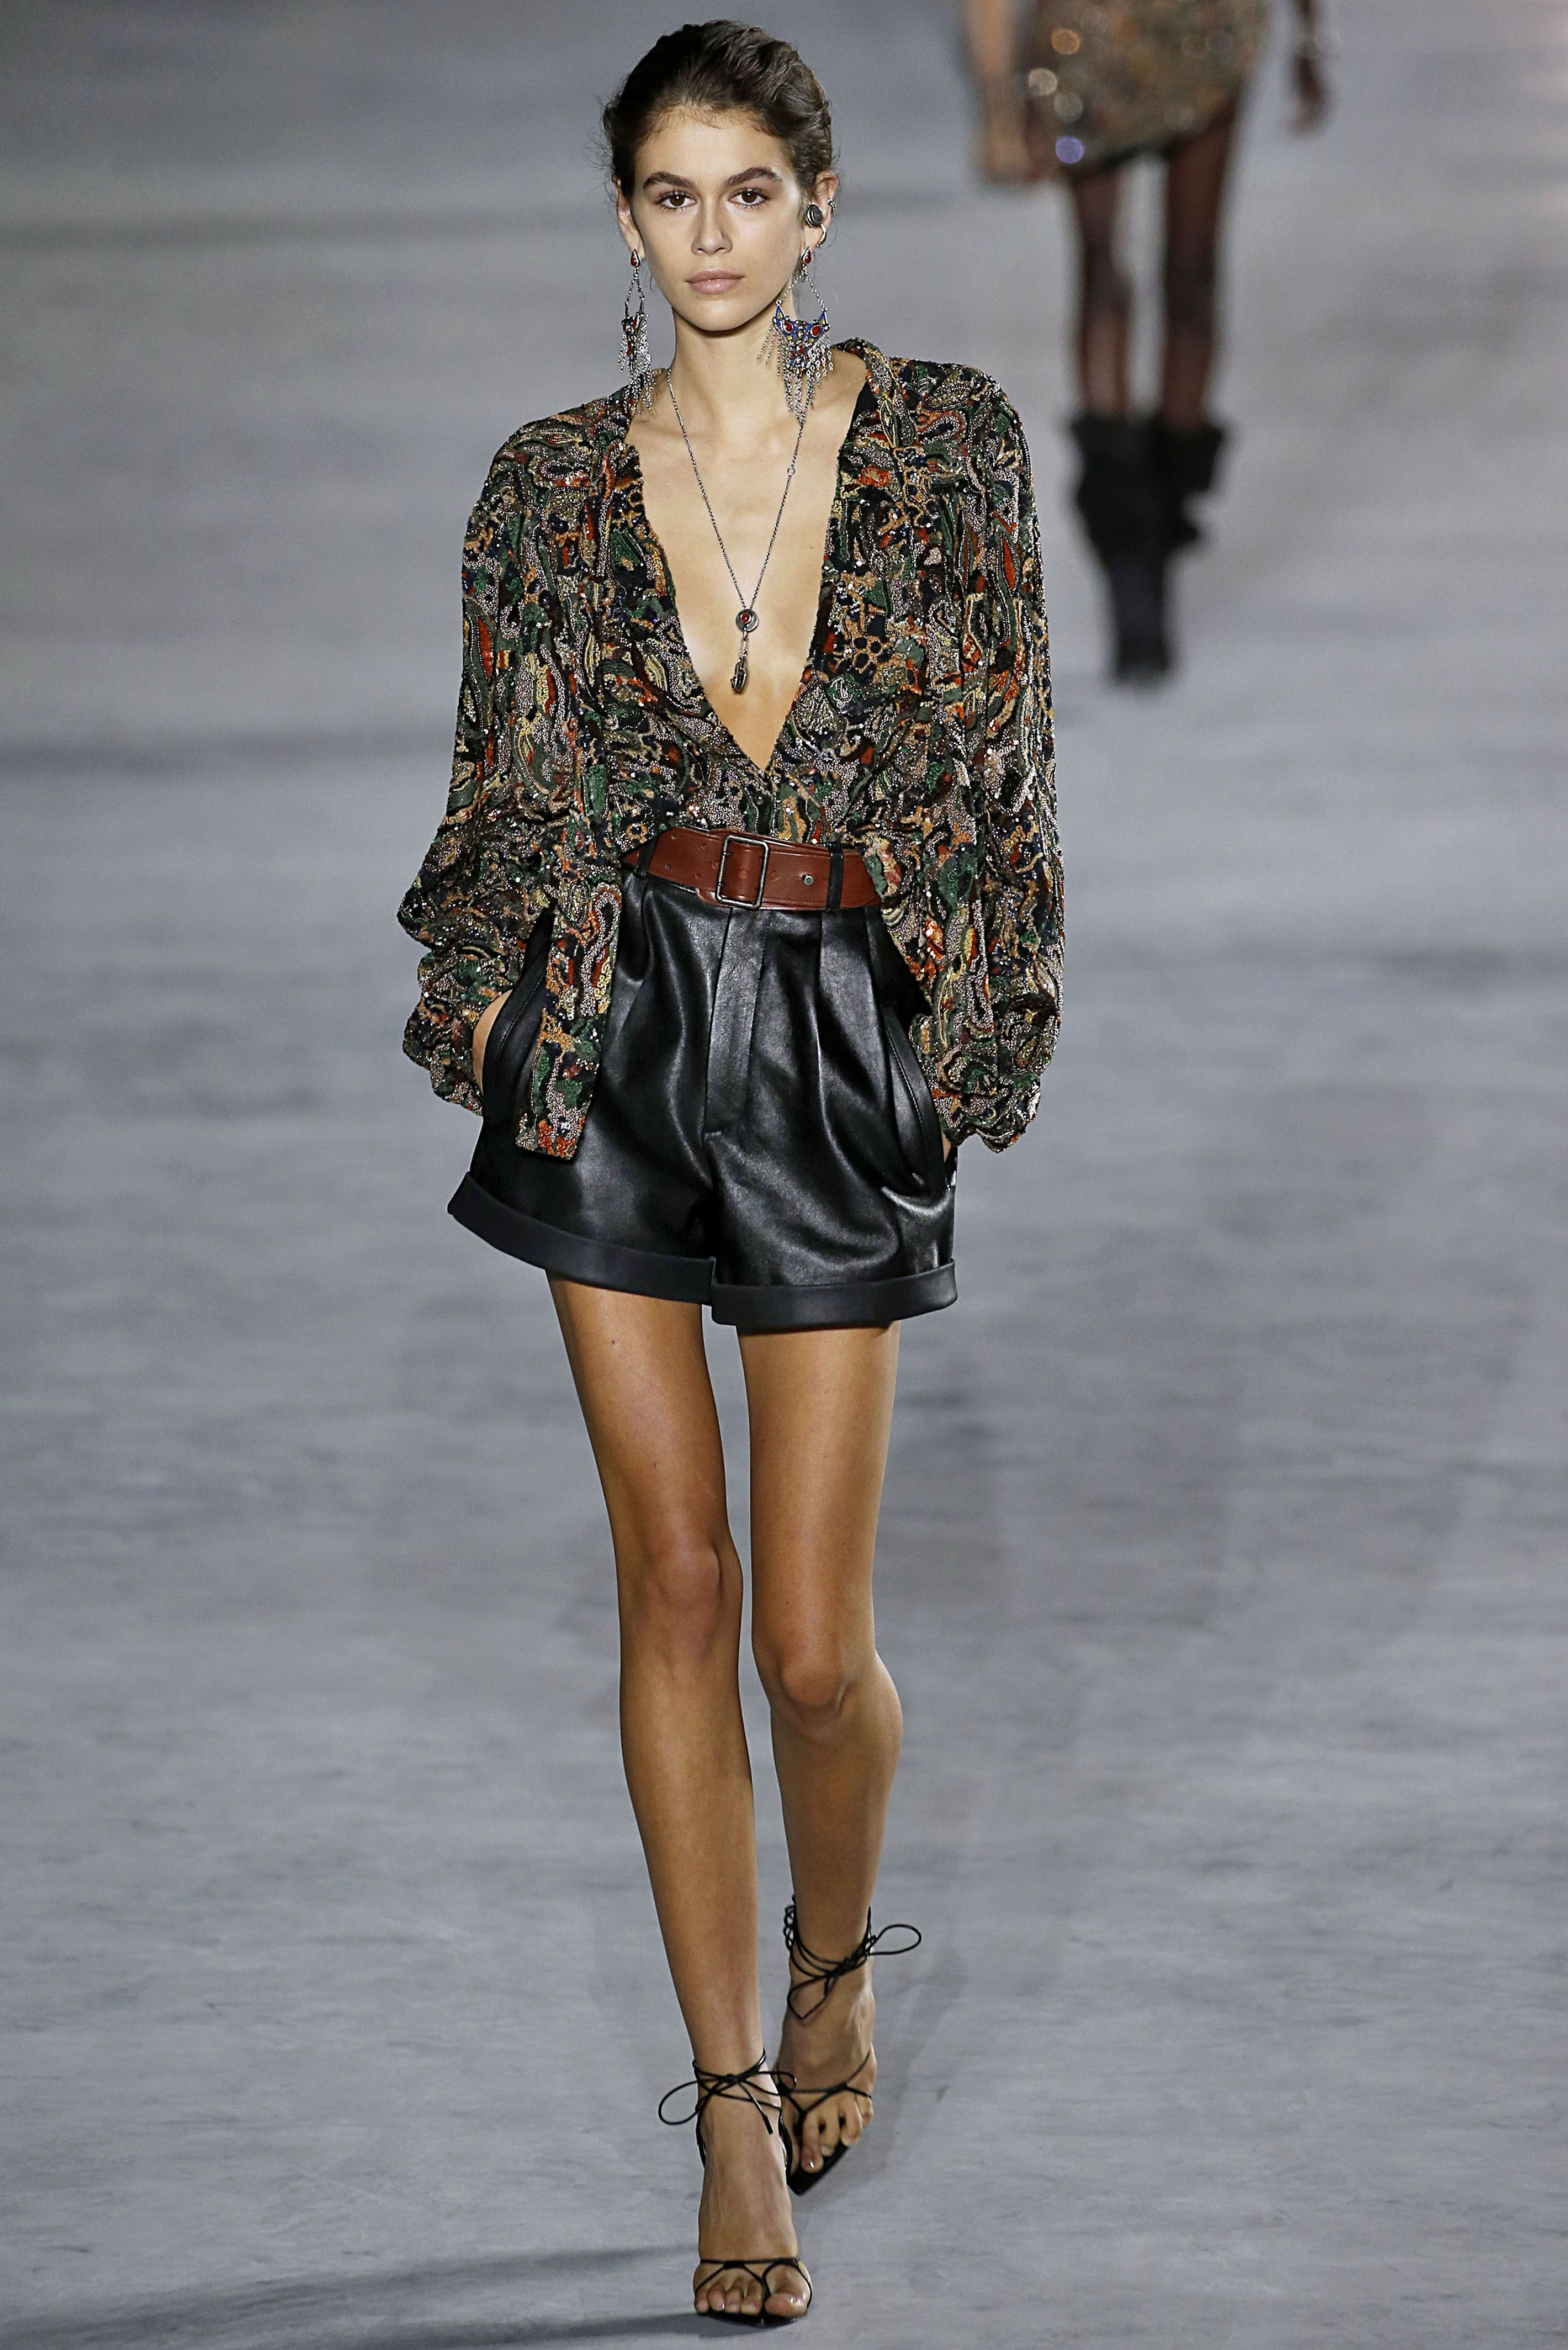 Kaia Gerber On The Runway At New York Fashion Week - Kaia Gerber First Fashion Month